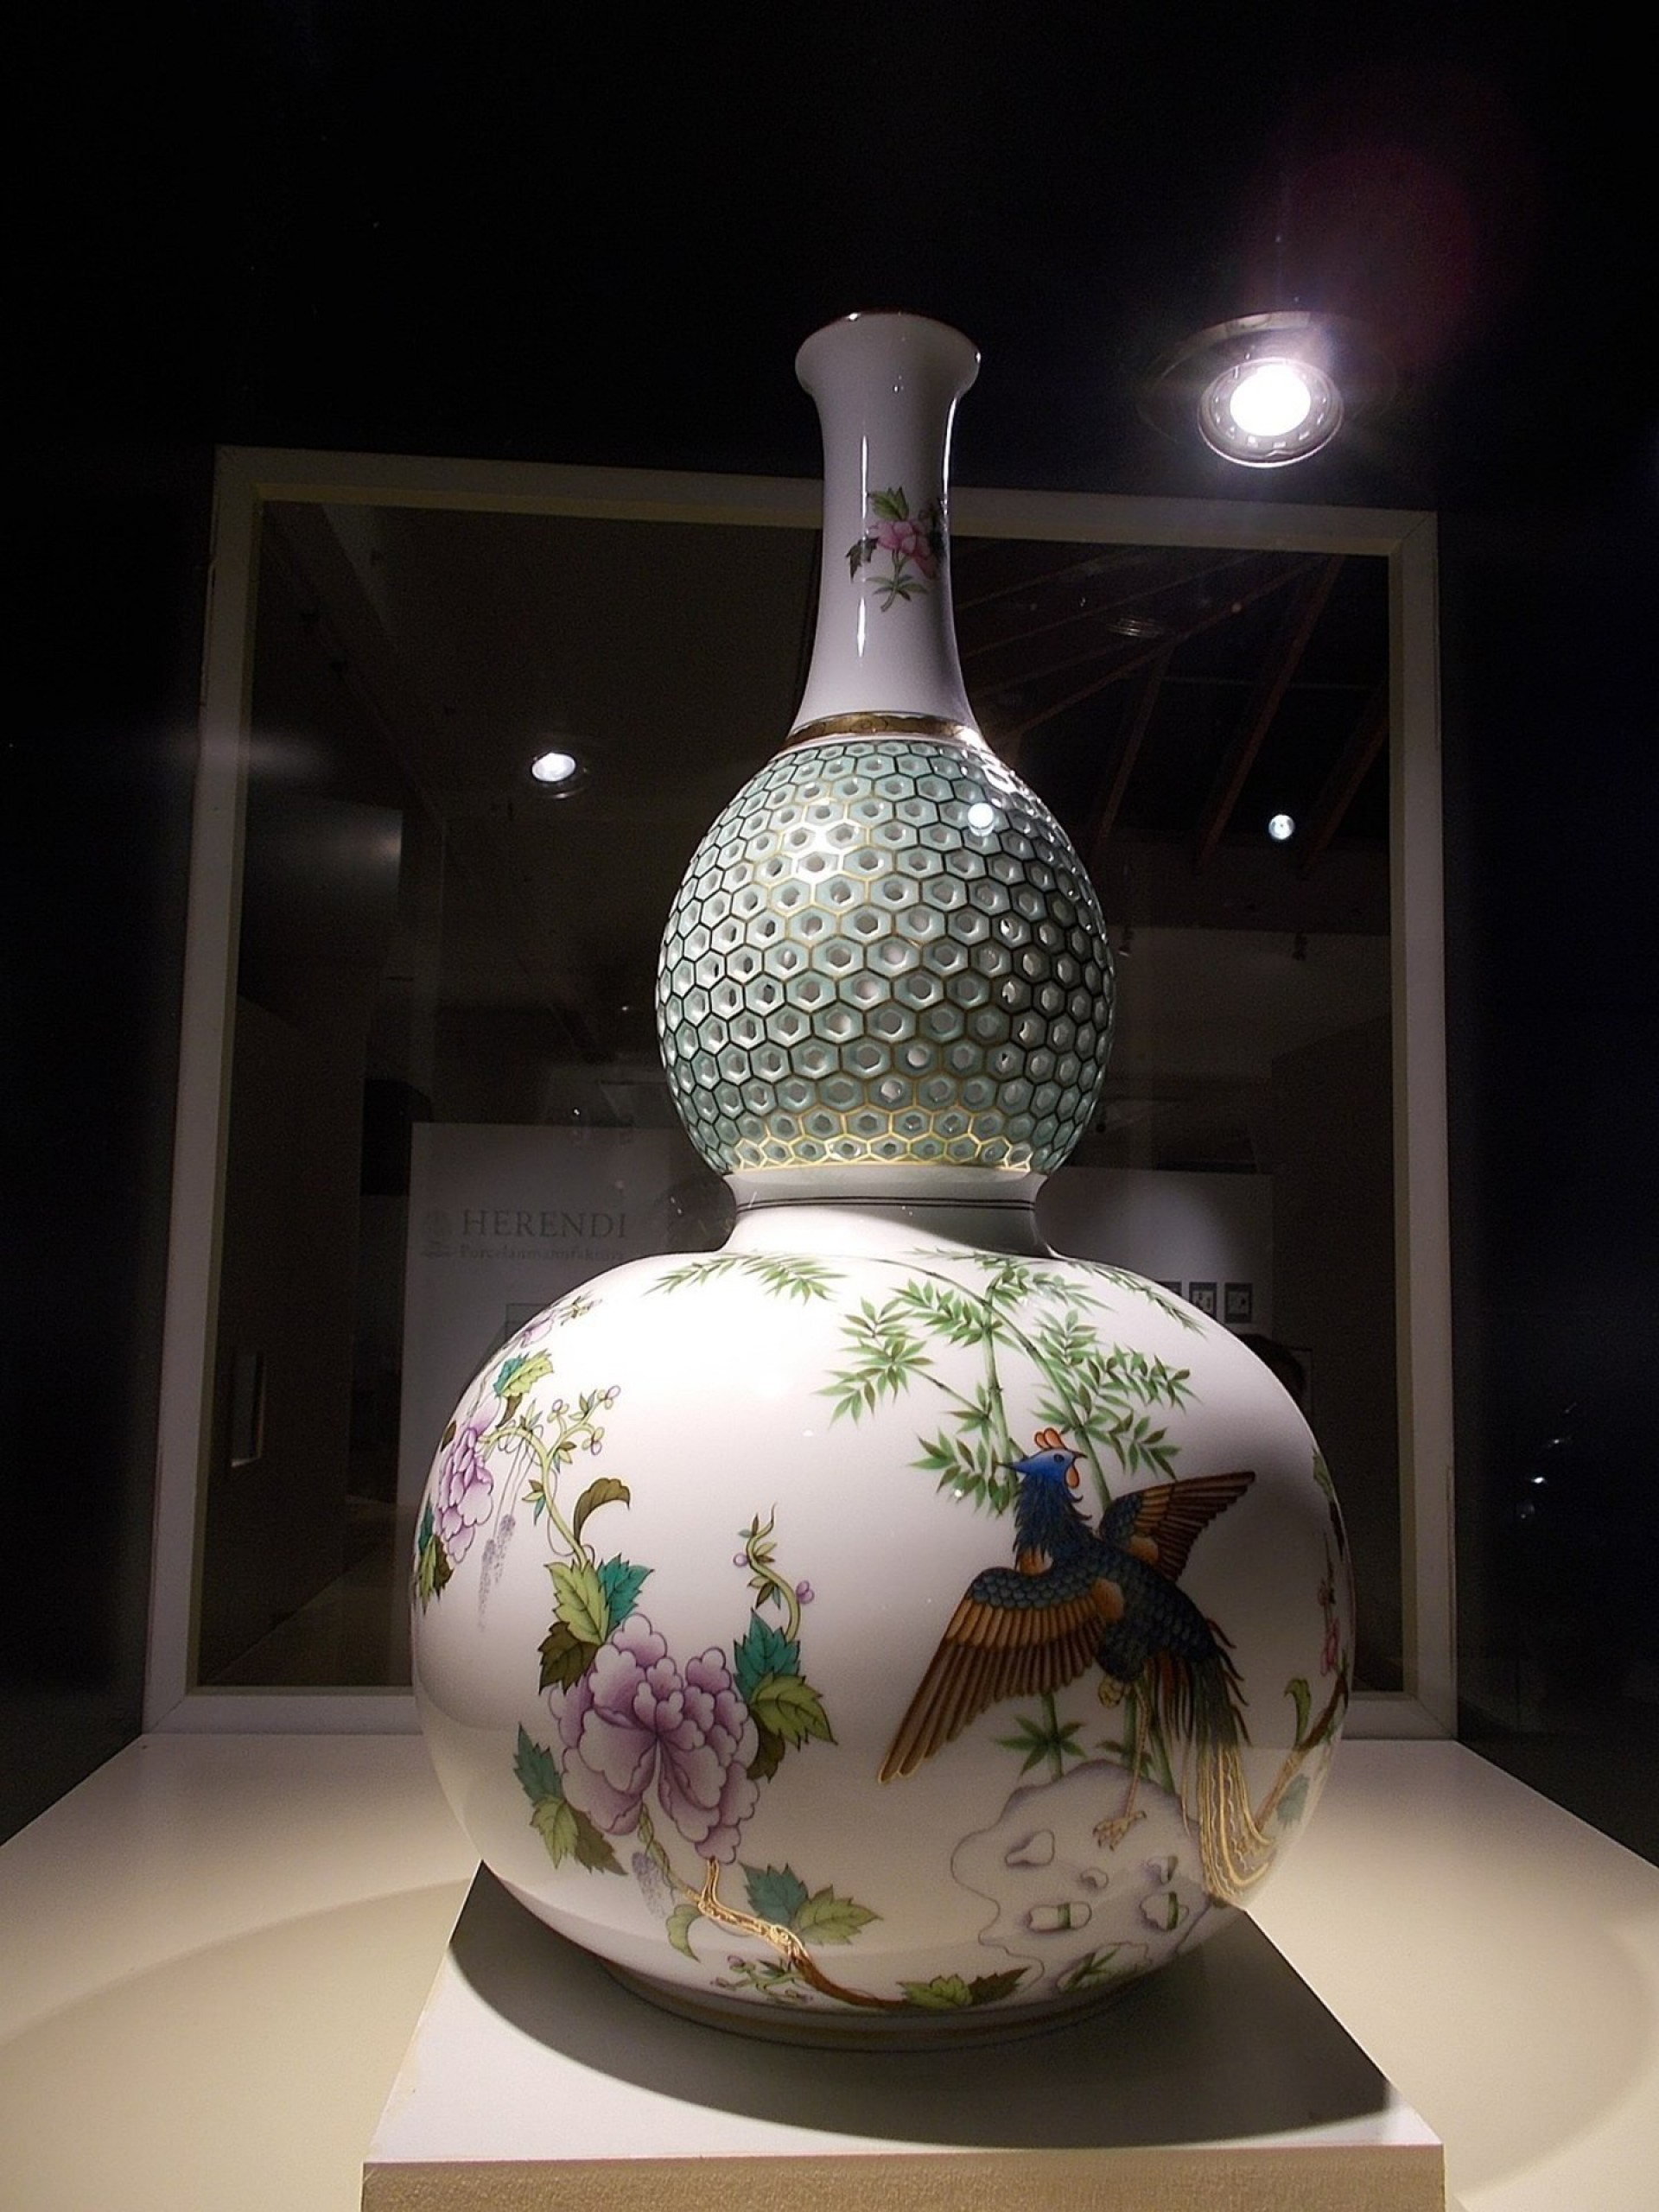 Herend Porcelain Manufactory (Foto: Globetrotter19/Creative Commons)